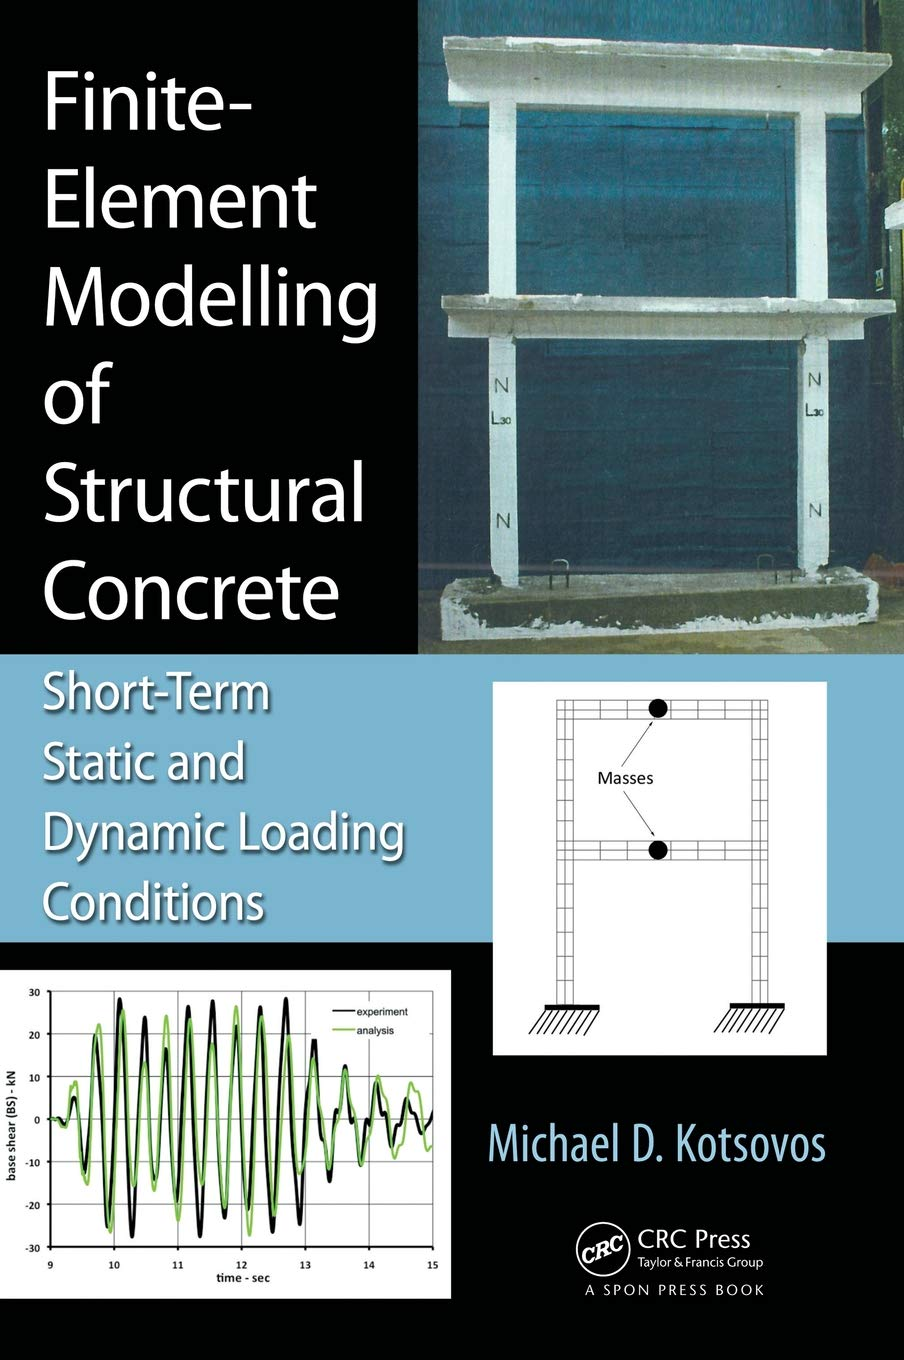 Finite-Element Modelling of Structural Concrete: Short-Term Static and Dynamic Loading Conditions: Amazon.es: Michael D. Kotsovos: Libros en idiomas ...